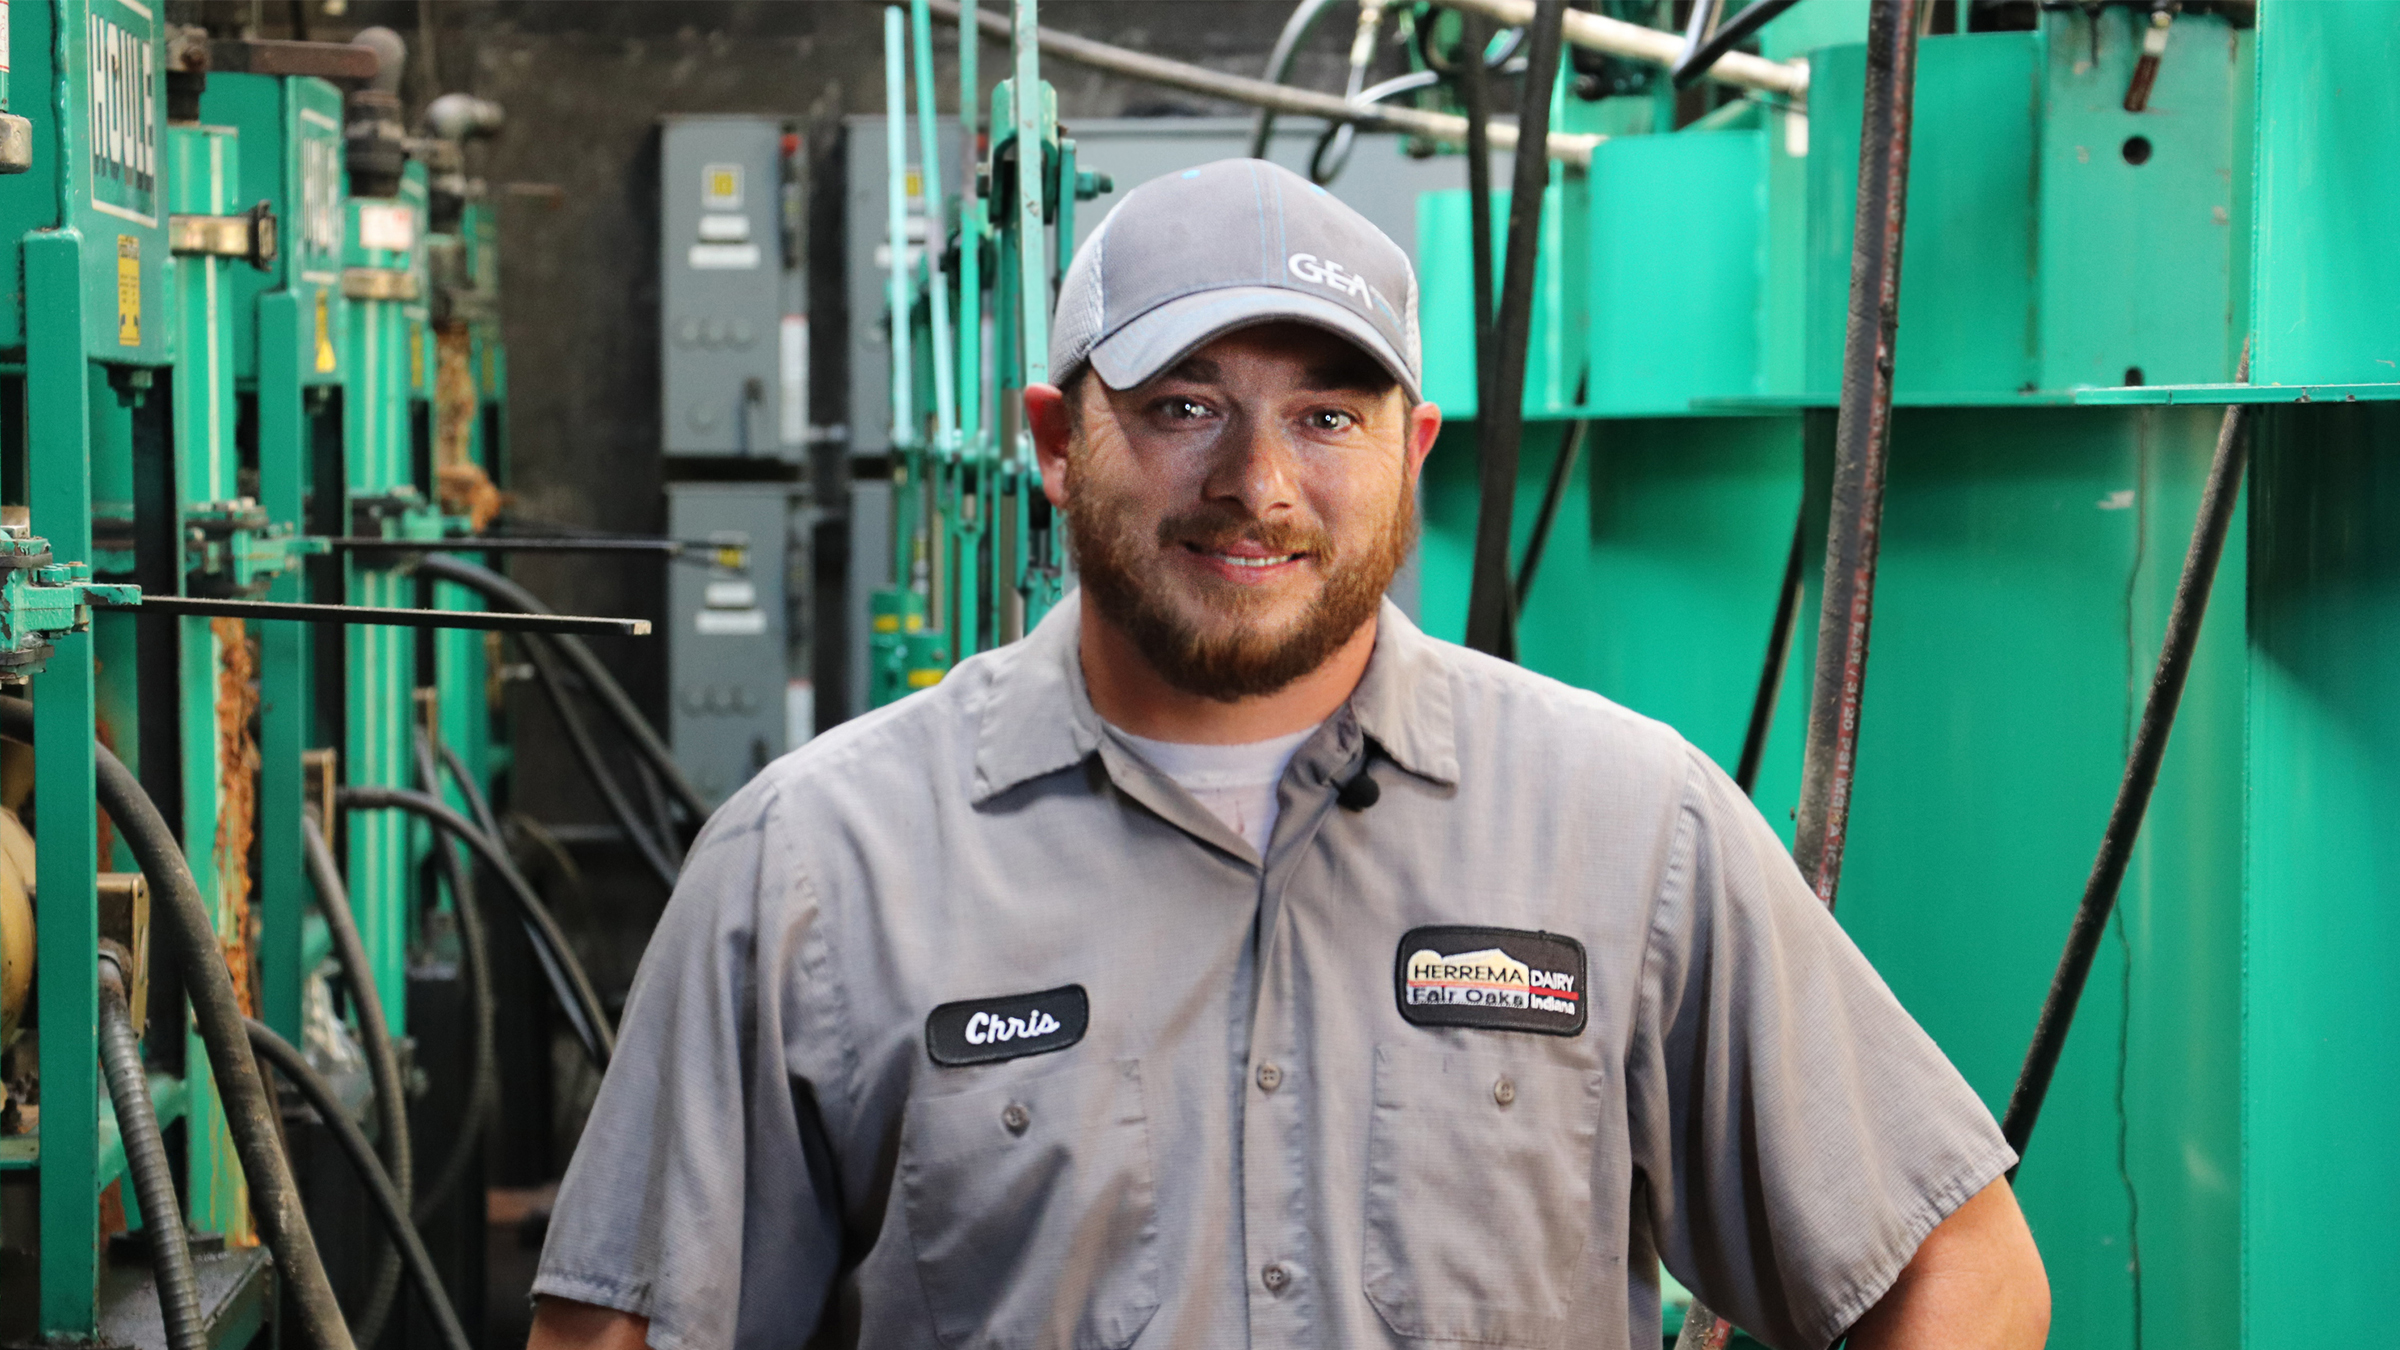 Chris Peck, Wartungsmanager bei Herrema Dairy in Fair Oaks, Indiana, USA